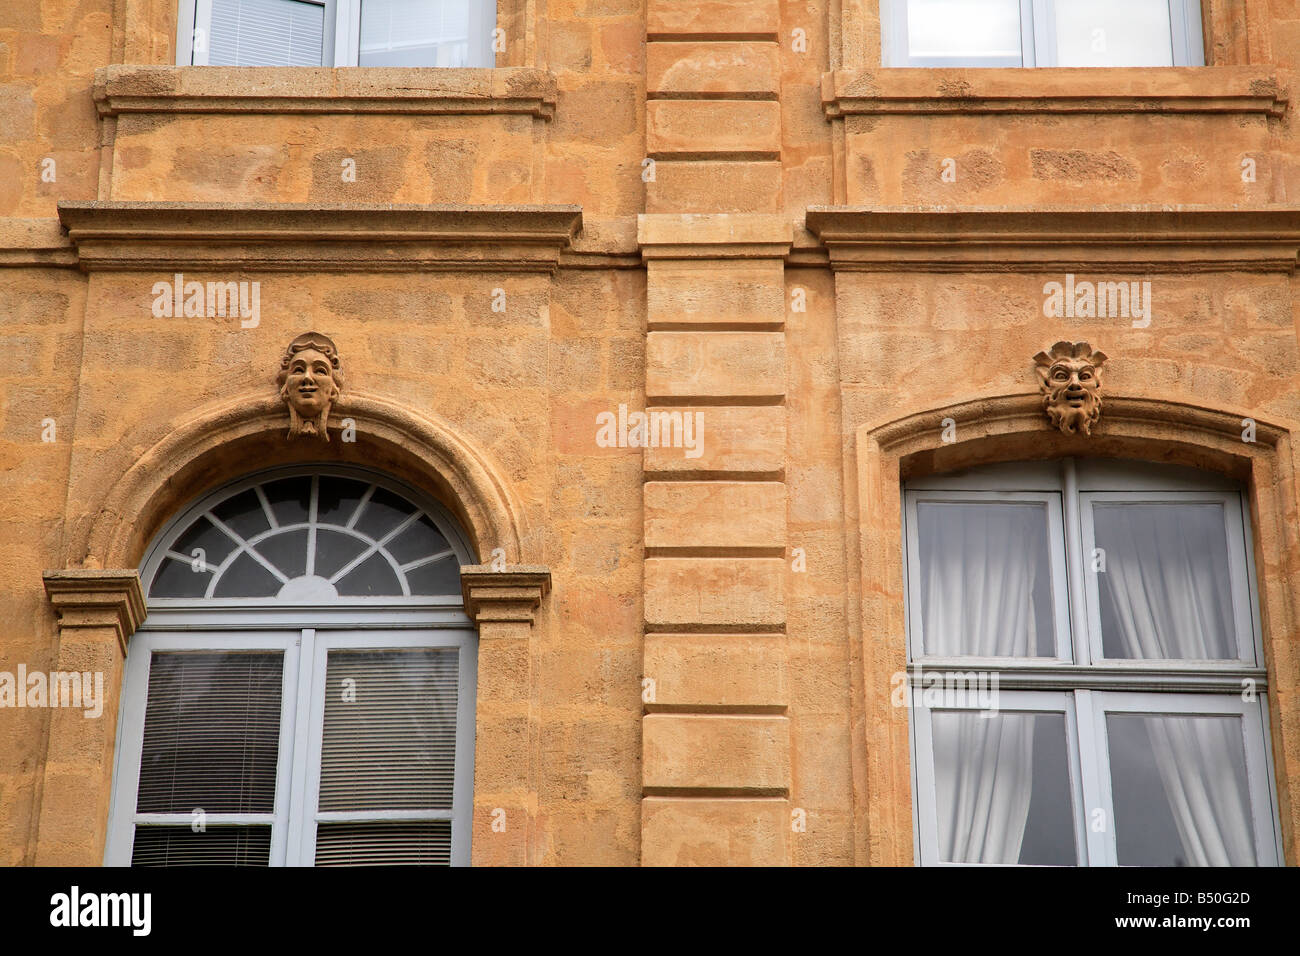 Architecture in mirabeau, aix en provence, france - Stock Image